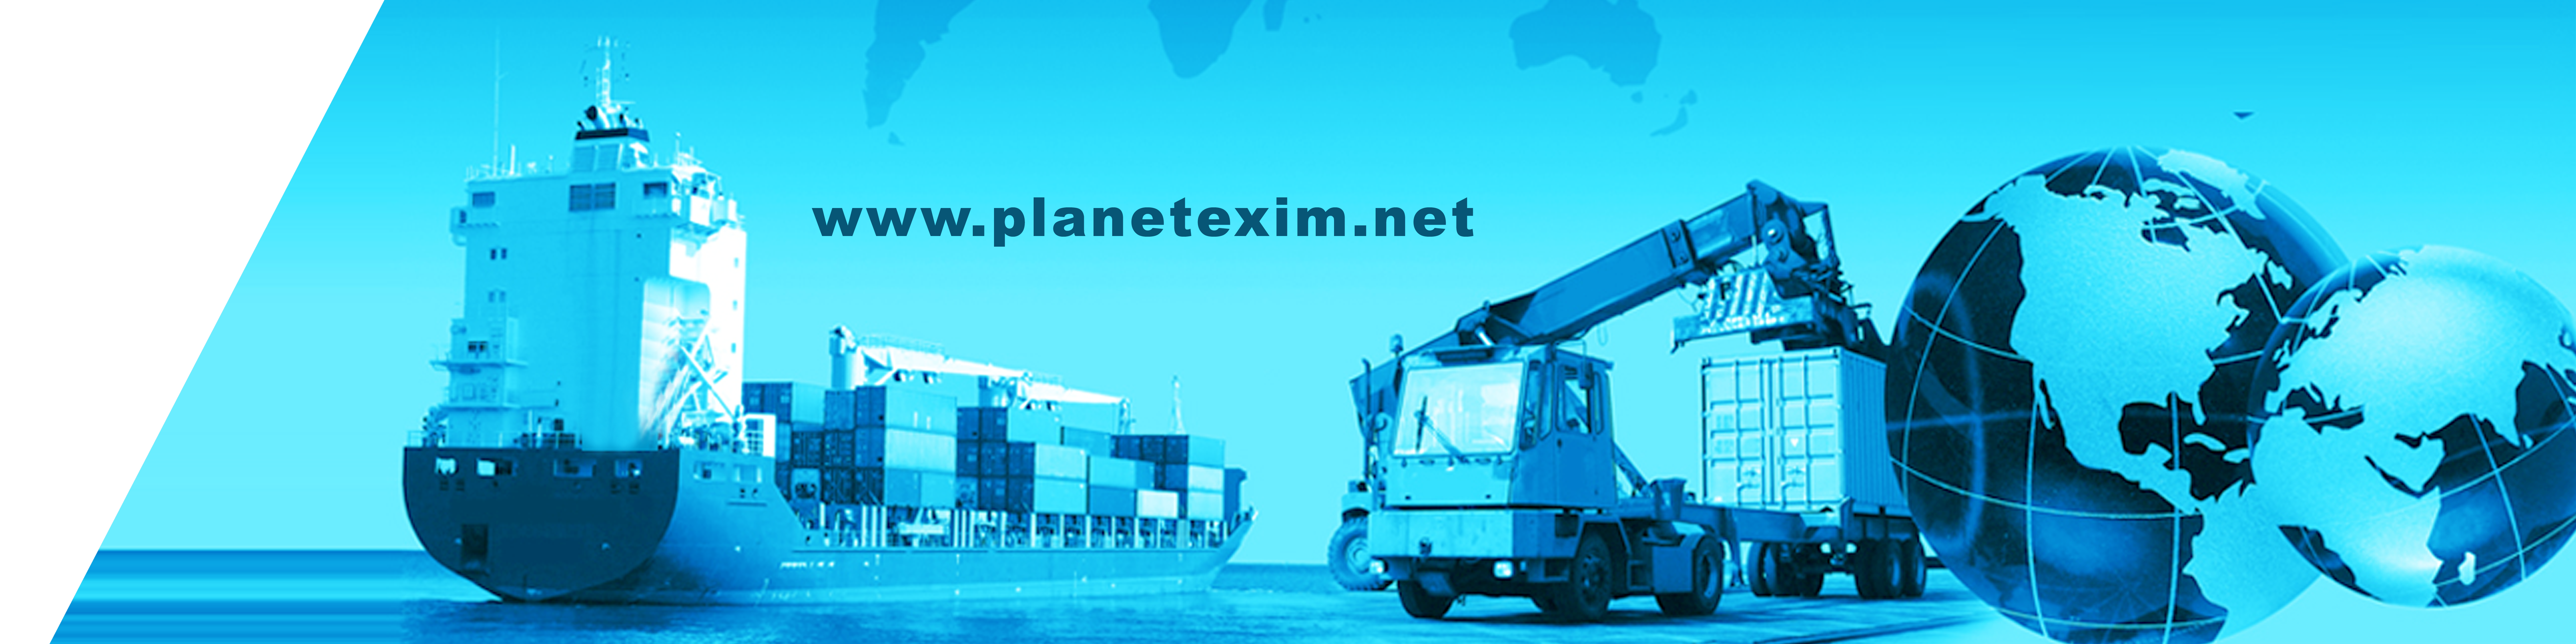 PlaneteximServices